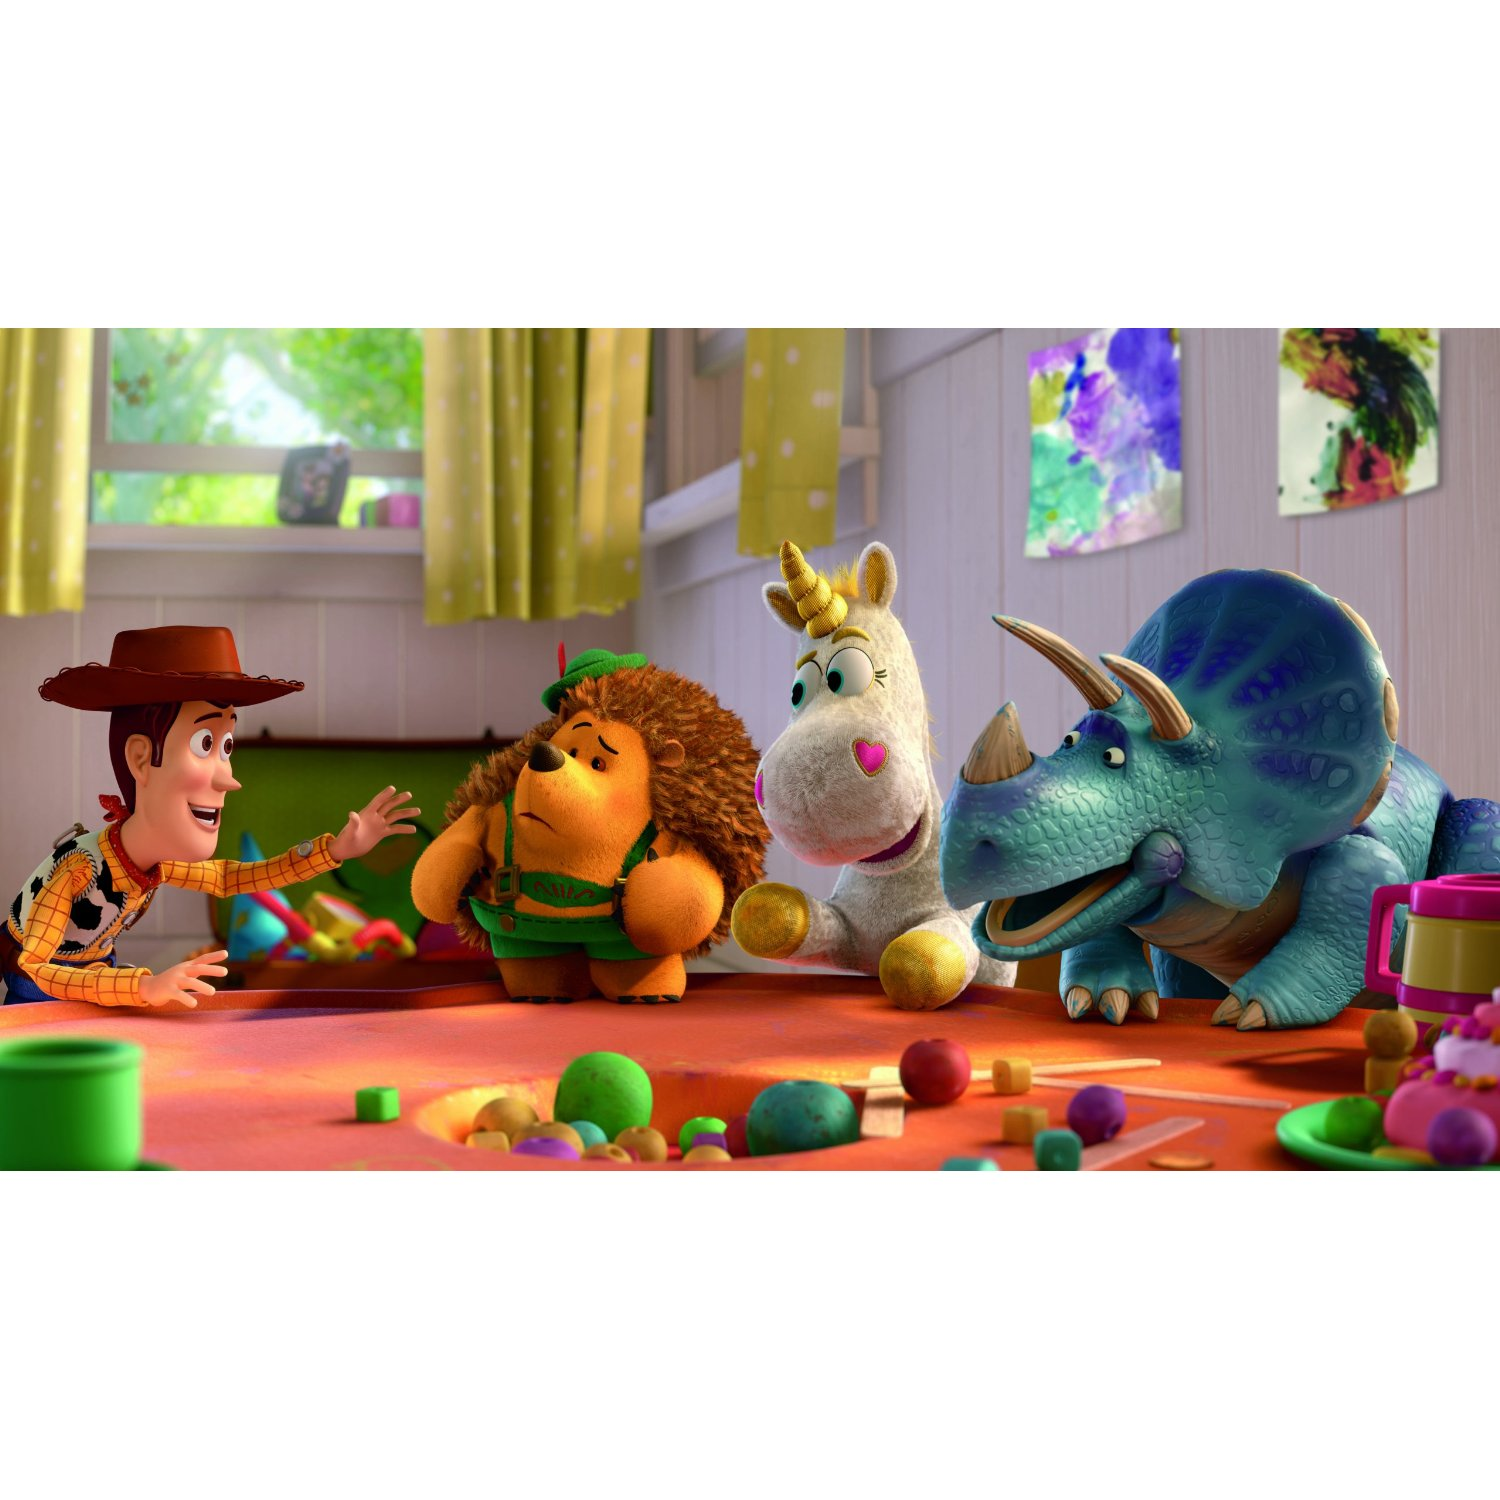 Toy Story 3 on DVD Now! - Must Have Mom